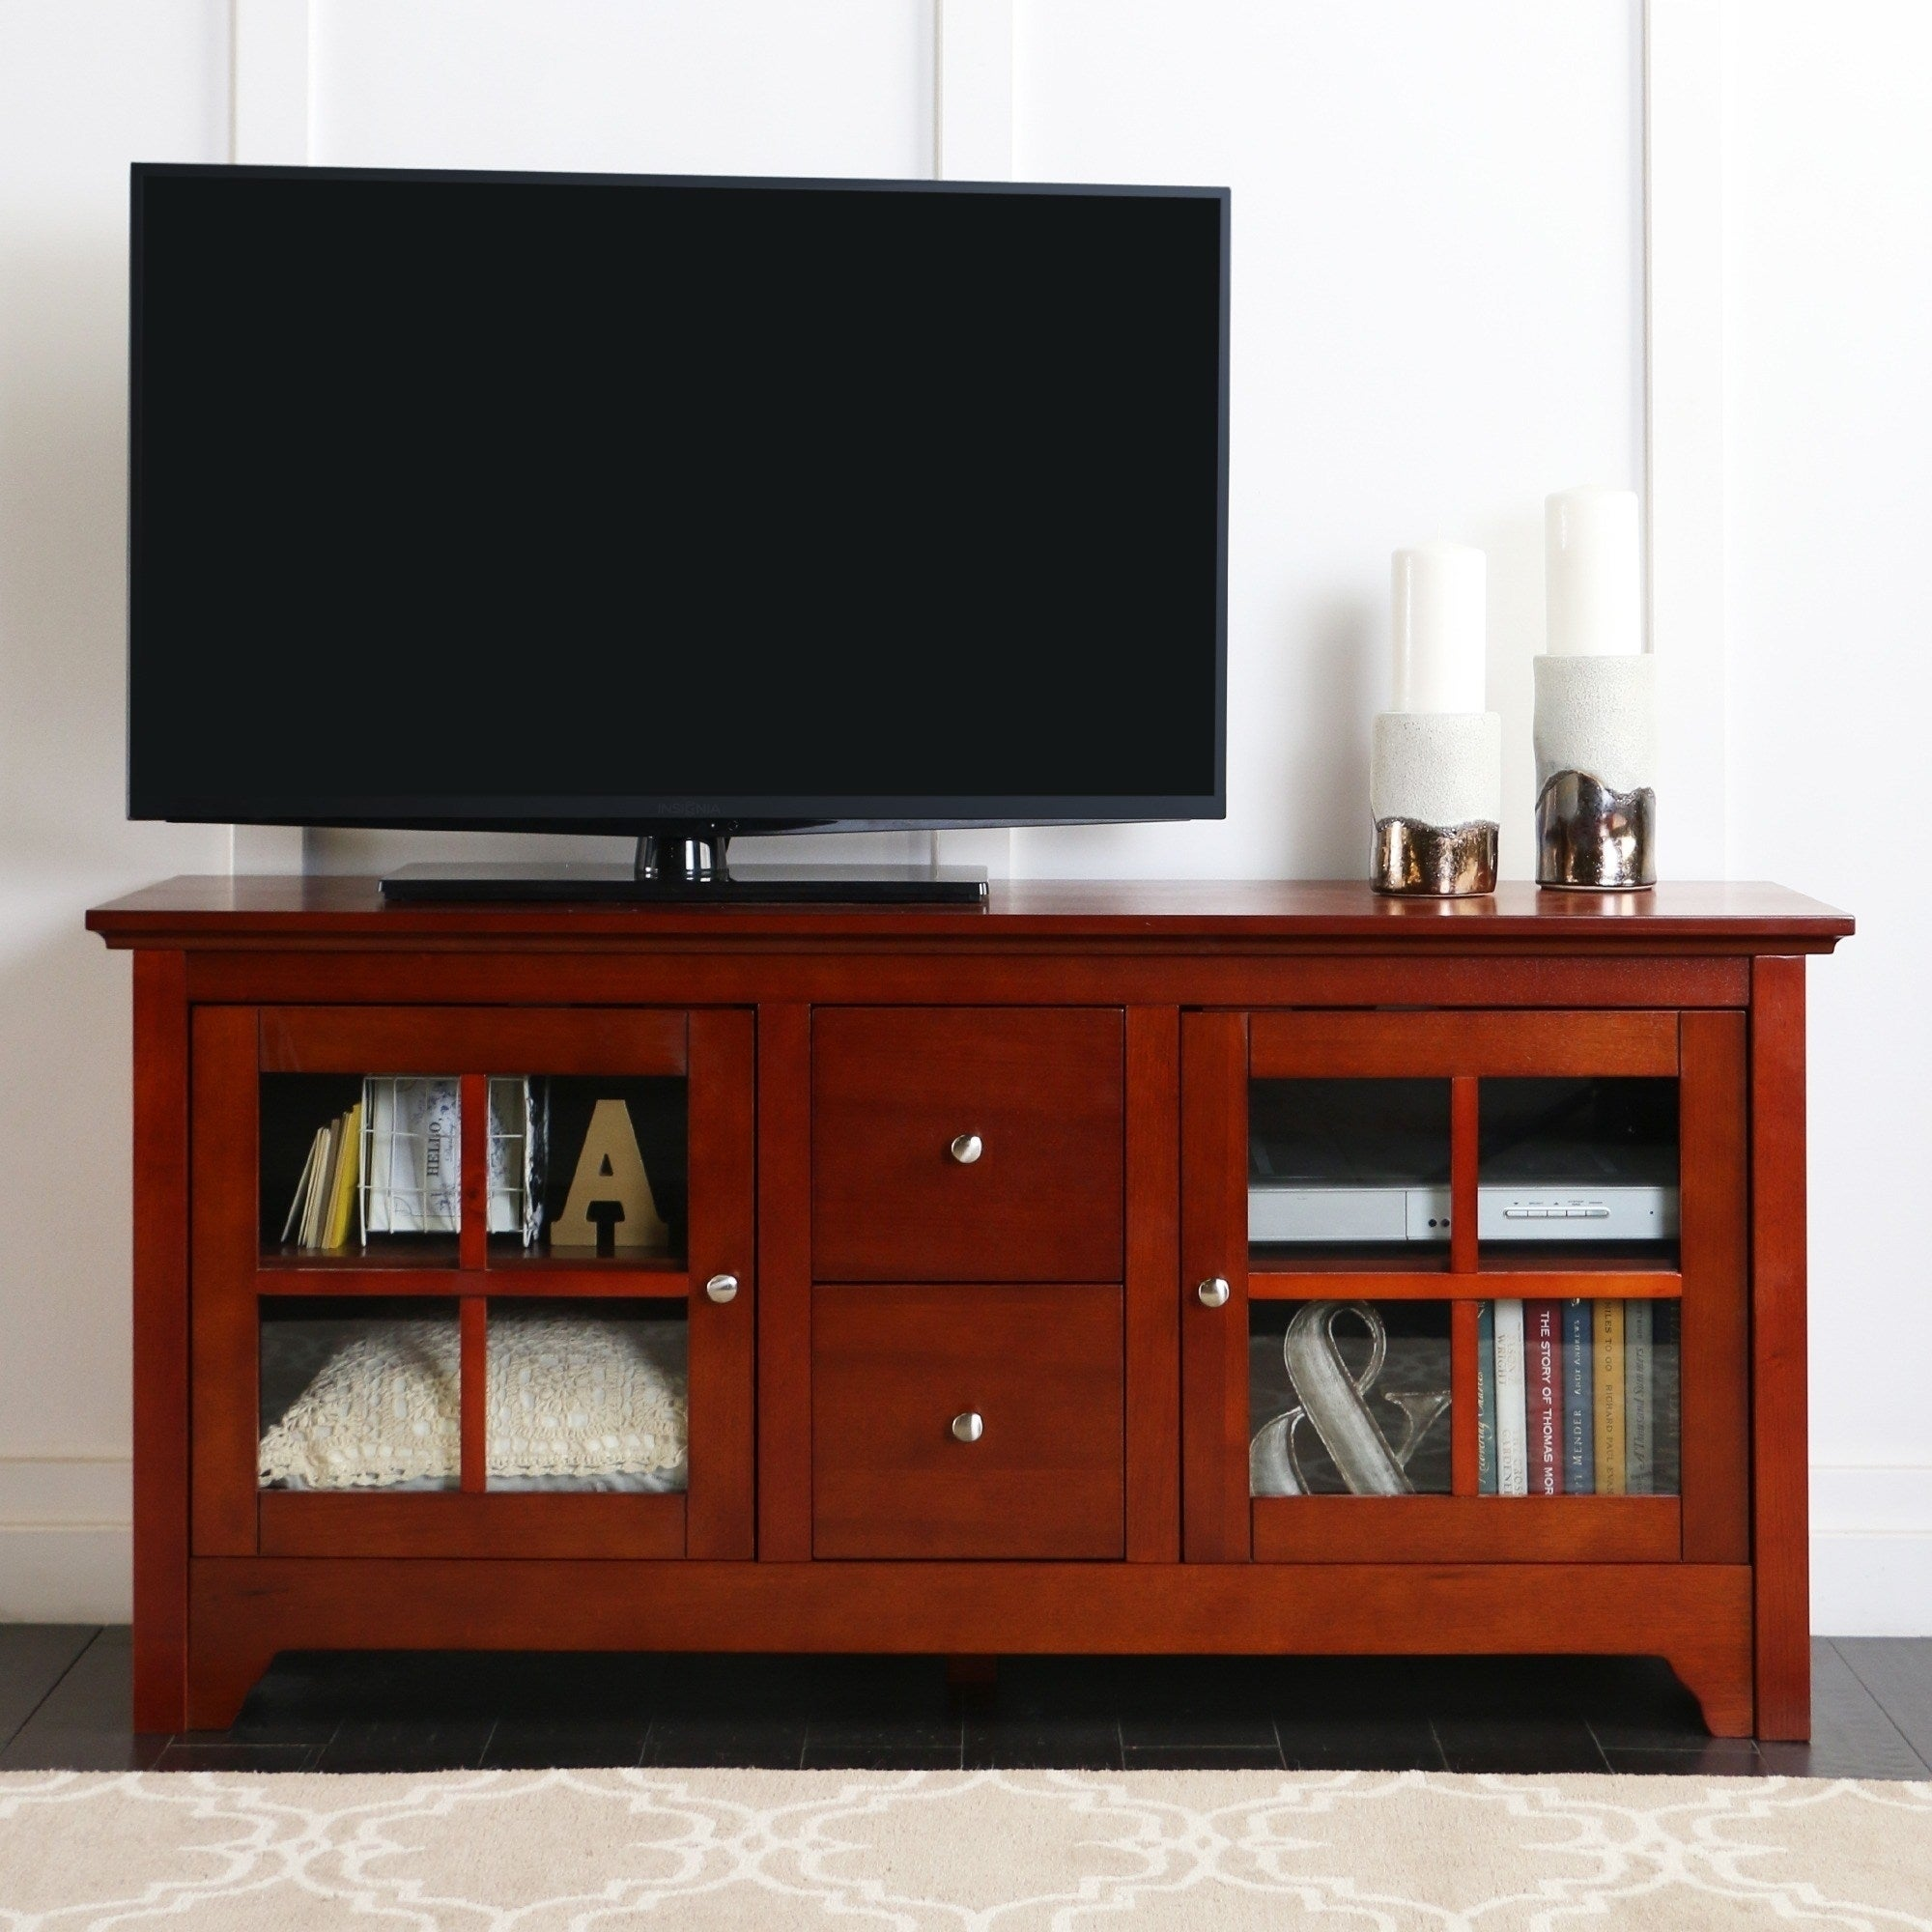 Shop 53 Tv Stand Console With Drawers 53 X 16 X 25h On Sale